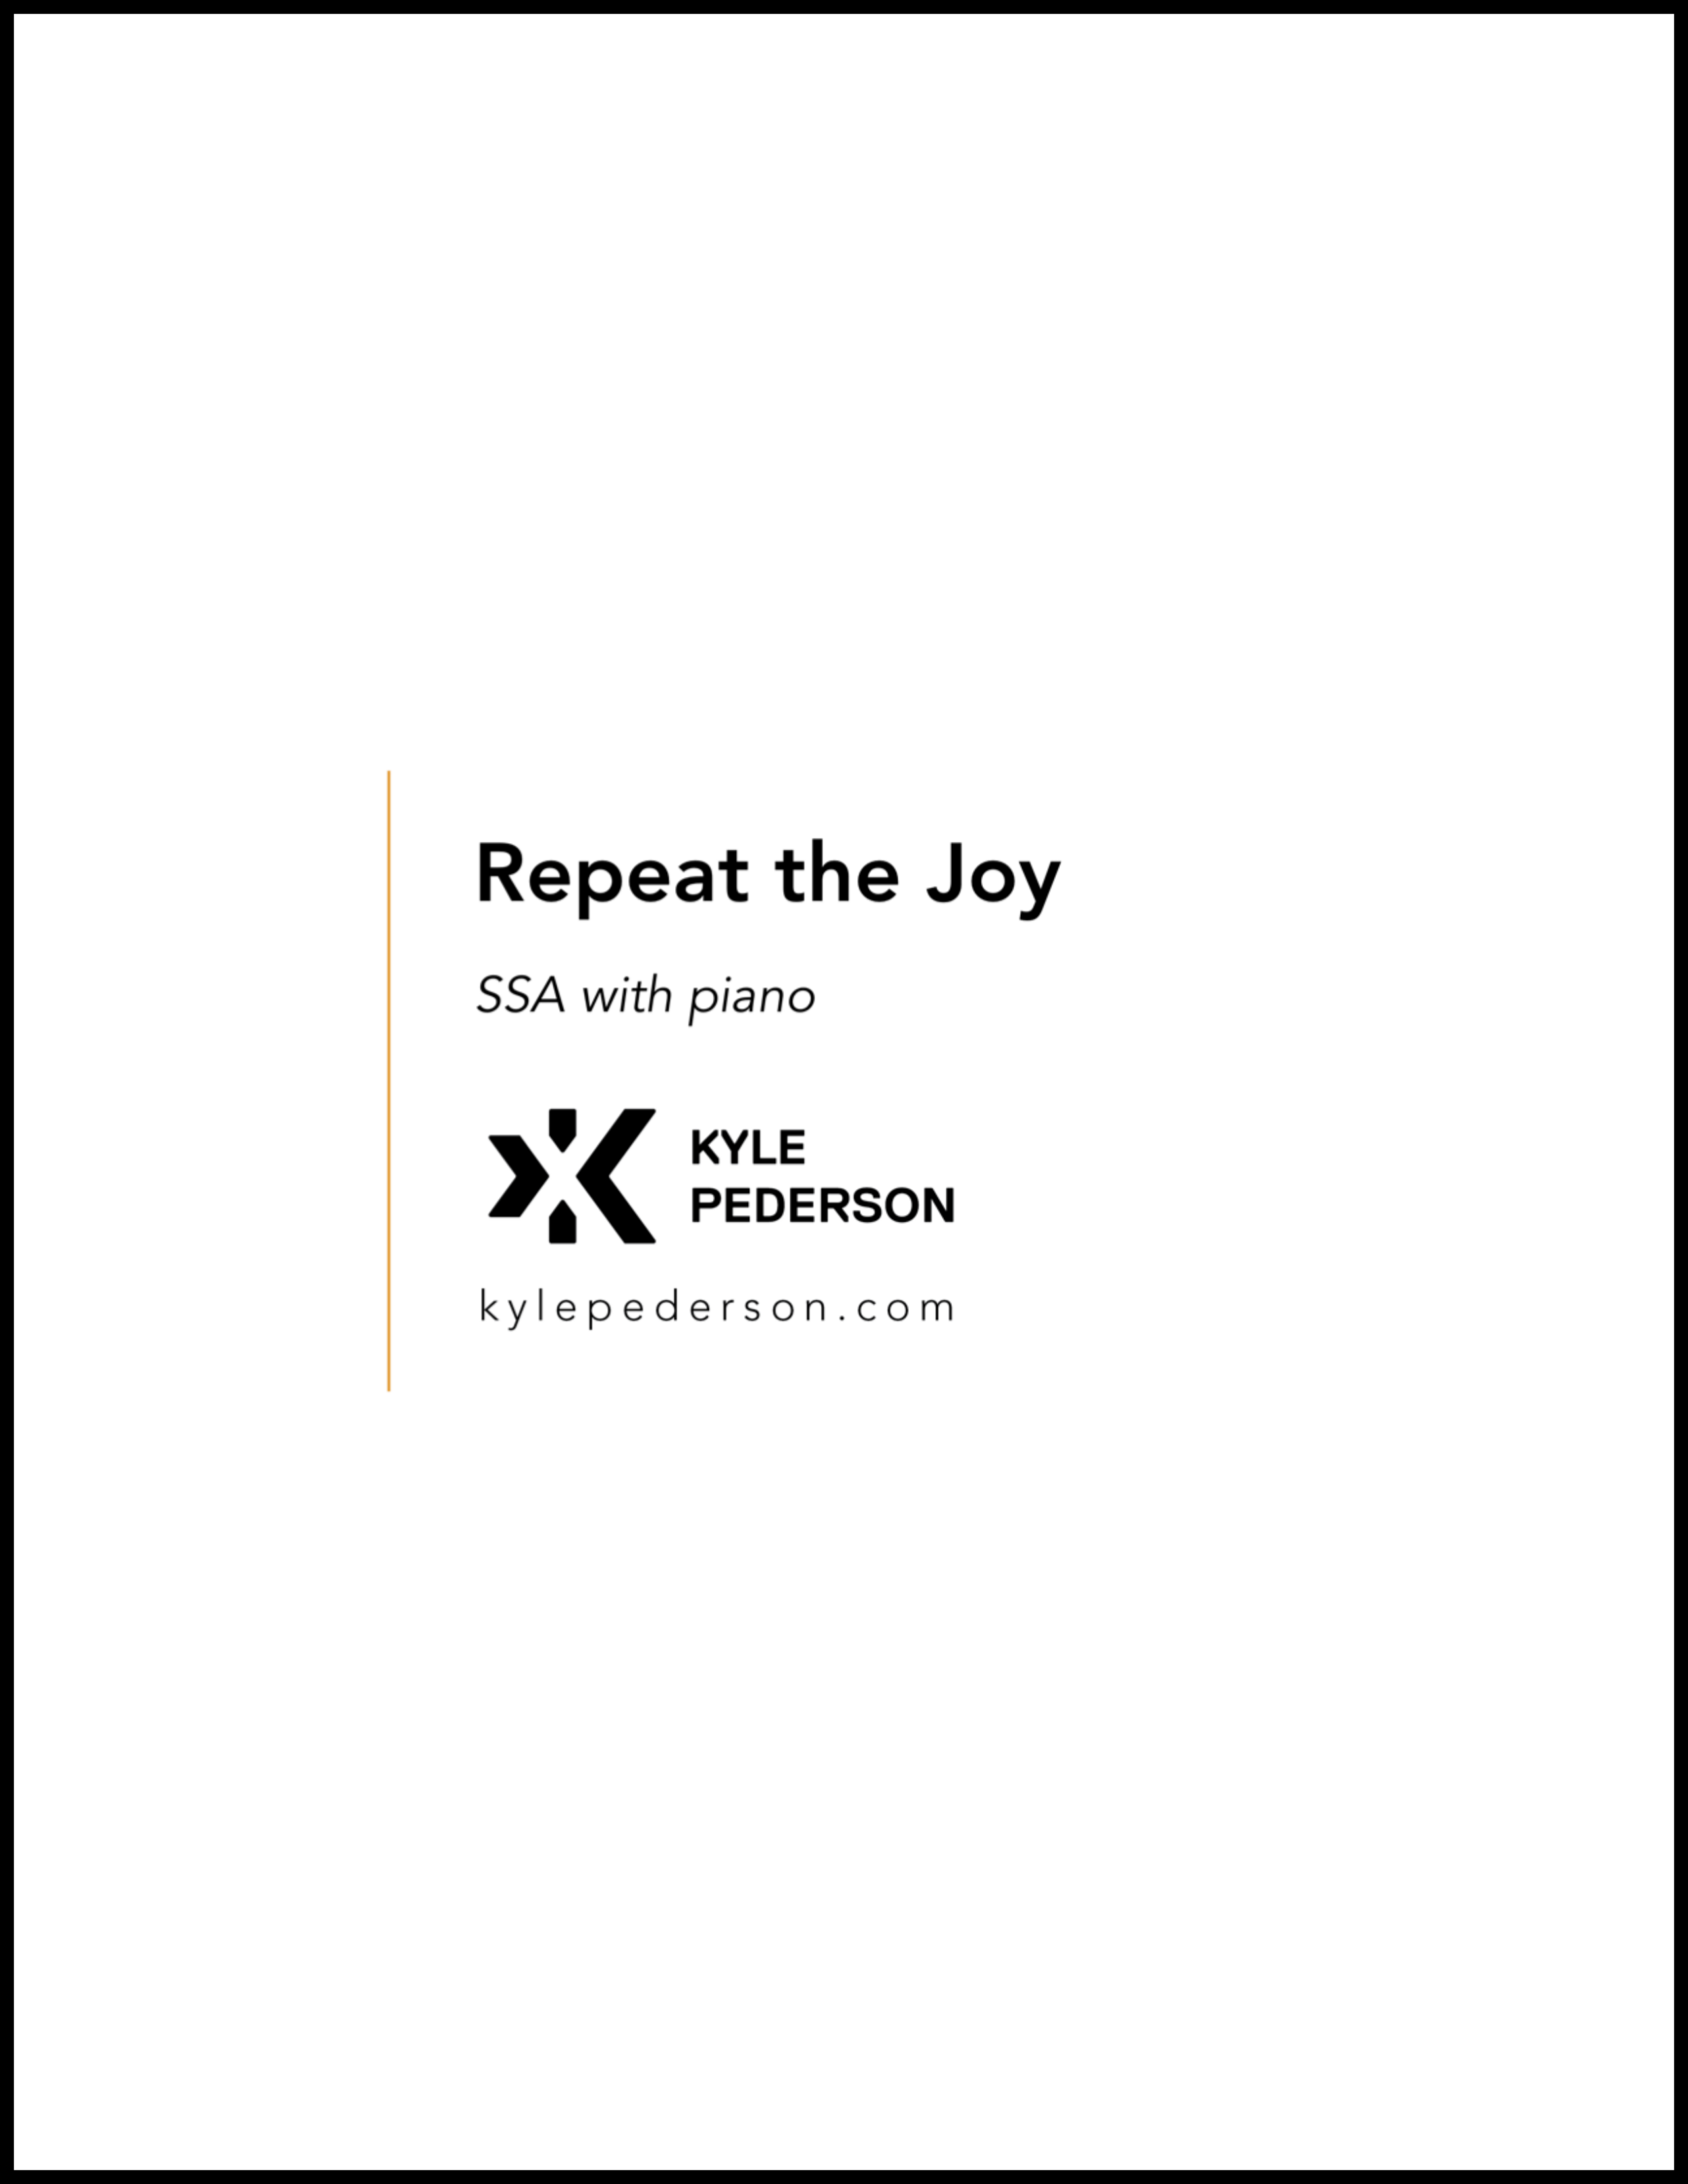 Repeat the Joy SSA Cover.png